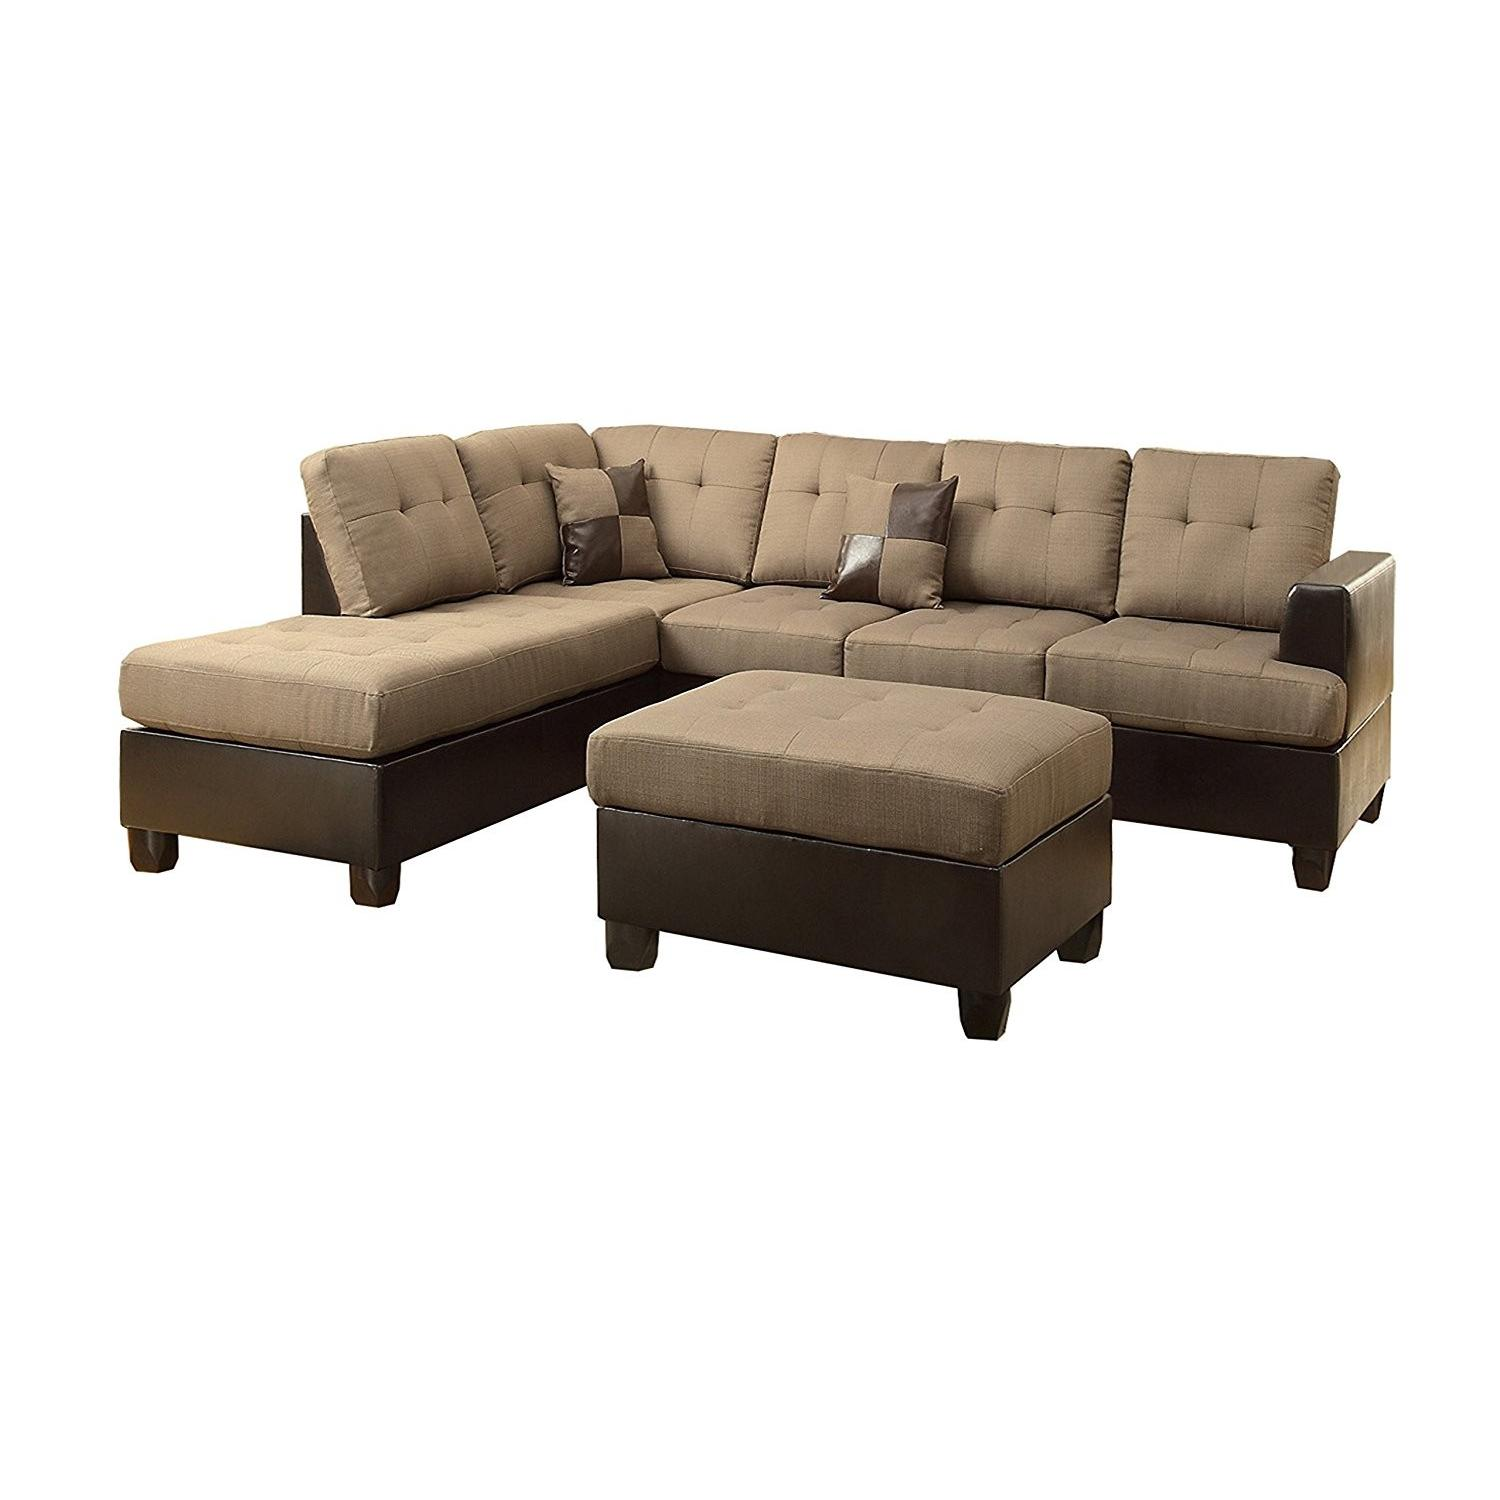 3 Piece Reversible Chaise Sectional Sofa Set In Tan Fabric ...